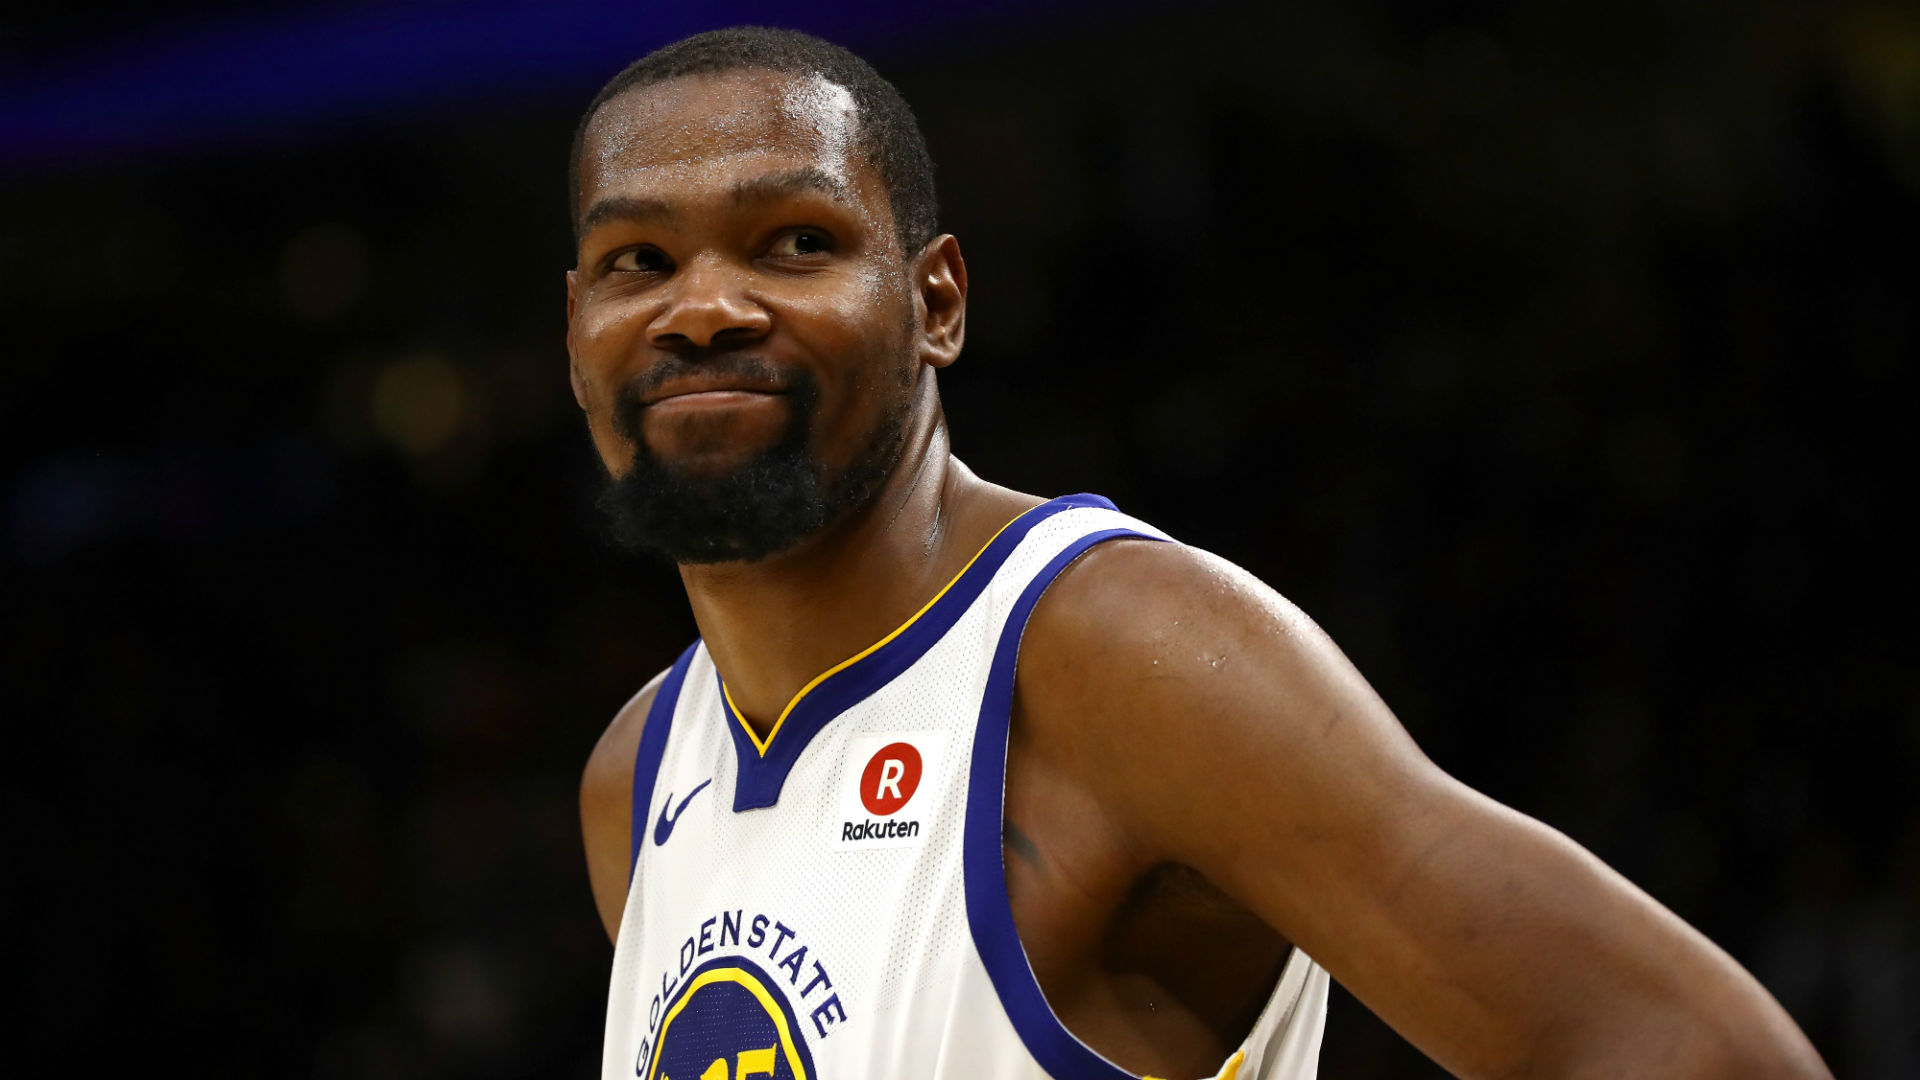 promo code 9c36c cf8b8 Kevin Durant on building a legacy away from Warriors   The NBA is never  going to fulfill me